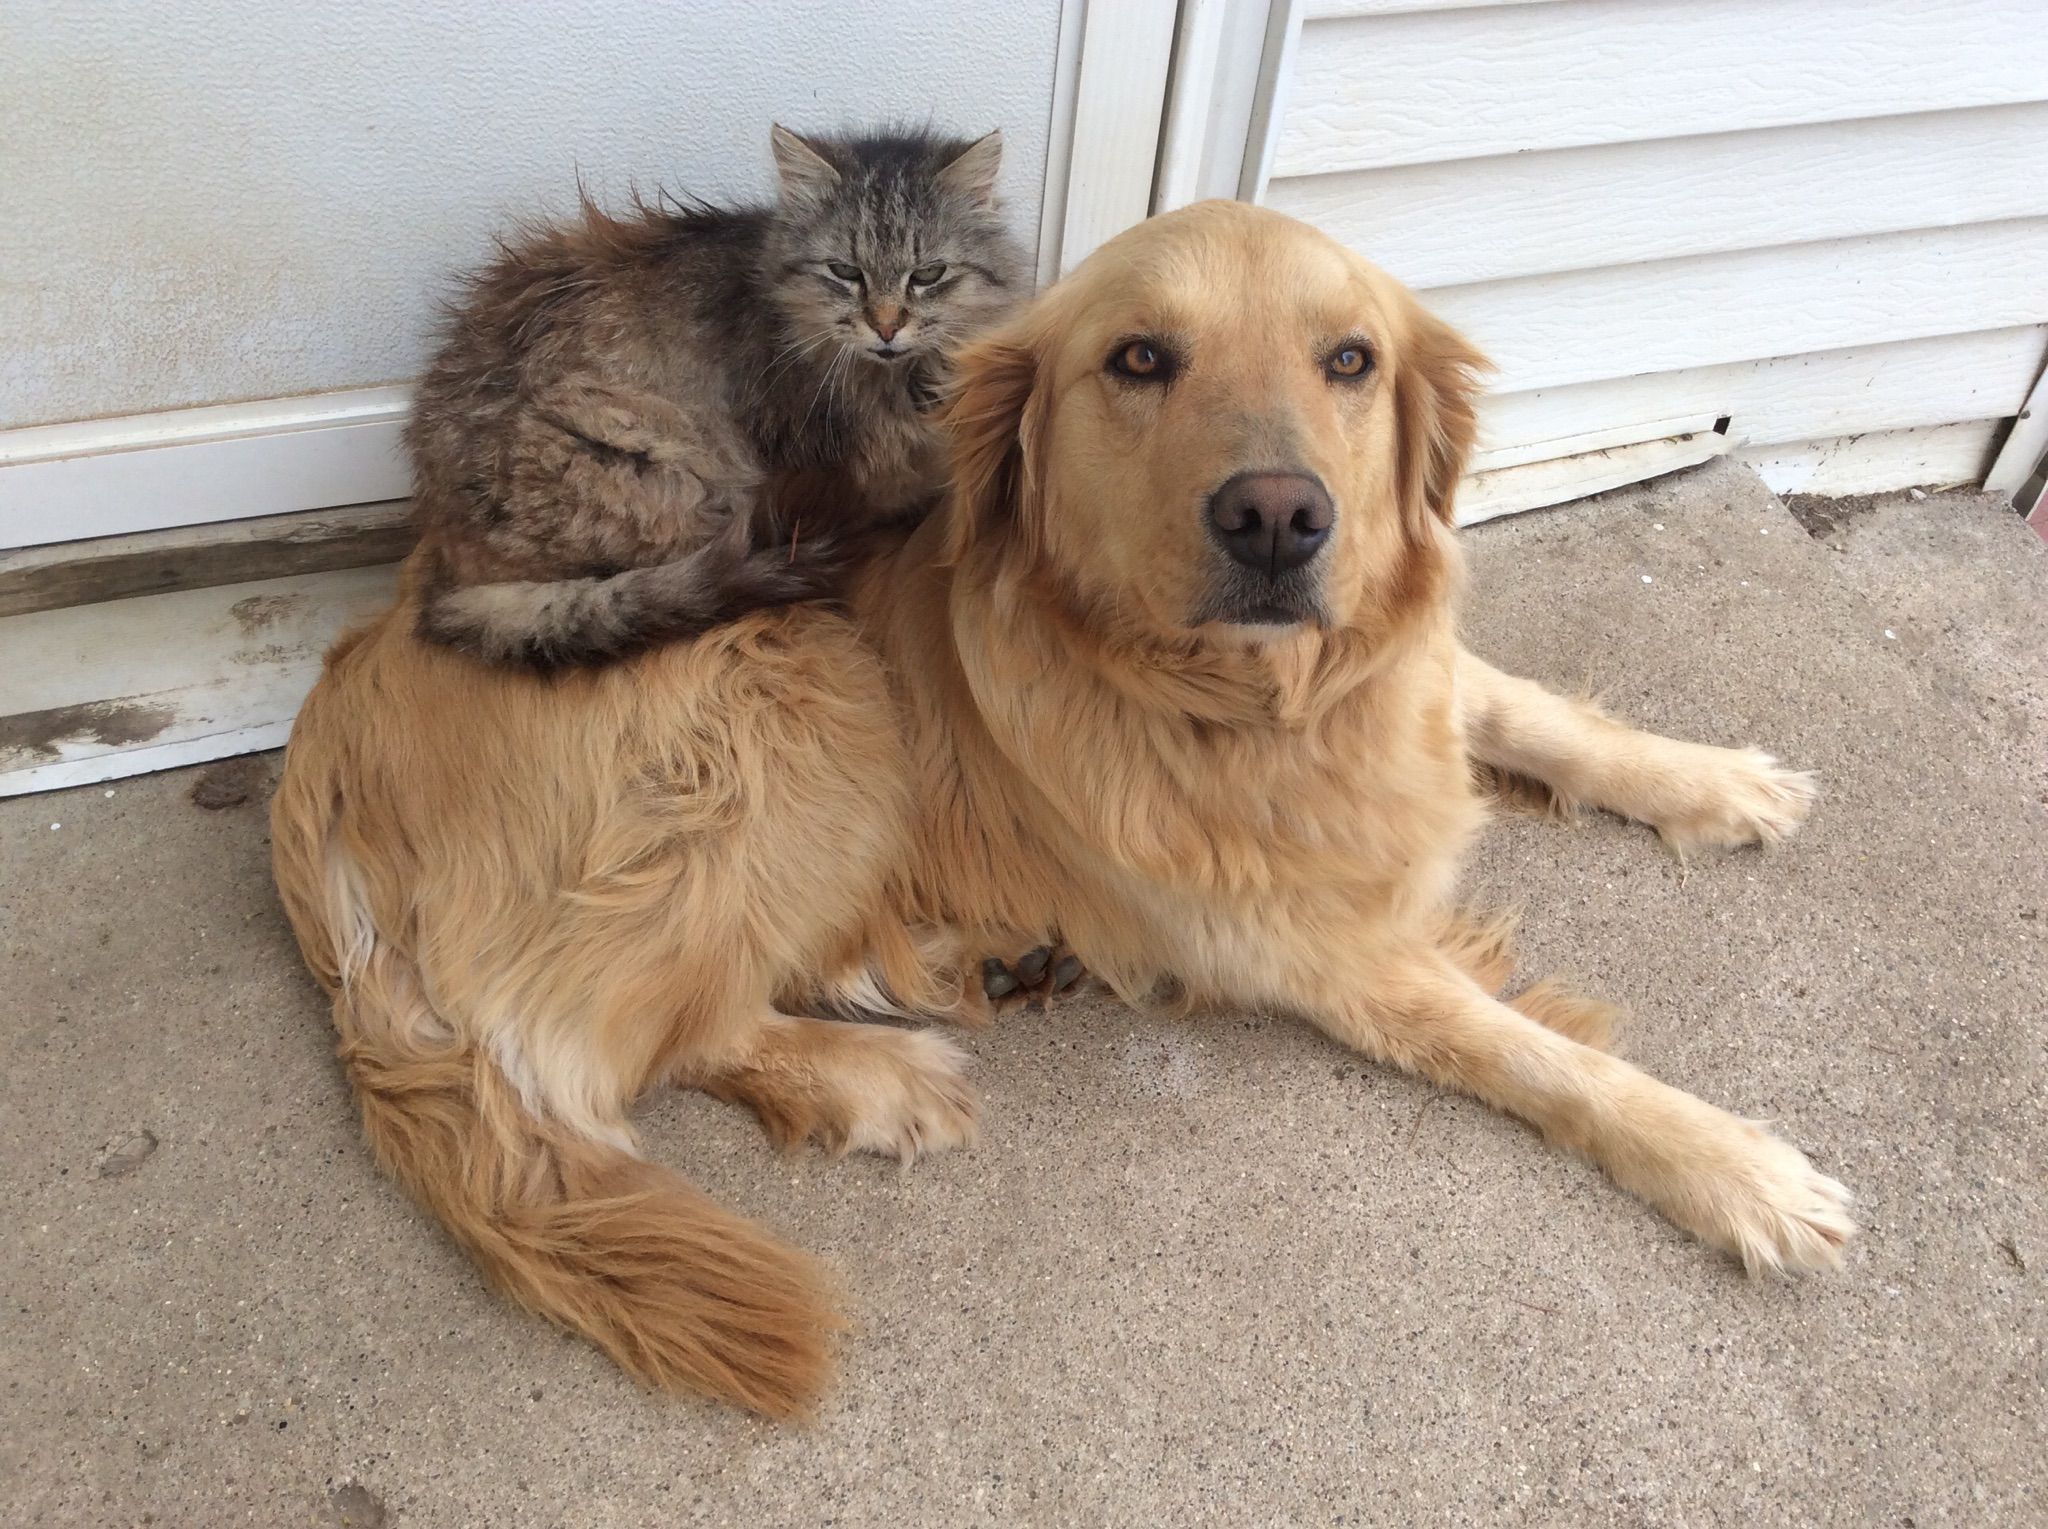 Friendly Farm Kitties and Doggo http://ift.tt/2osKthg